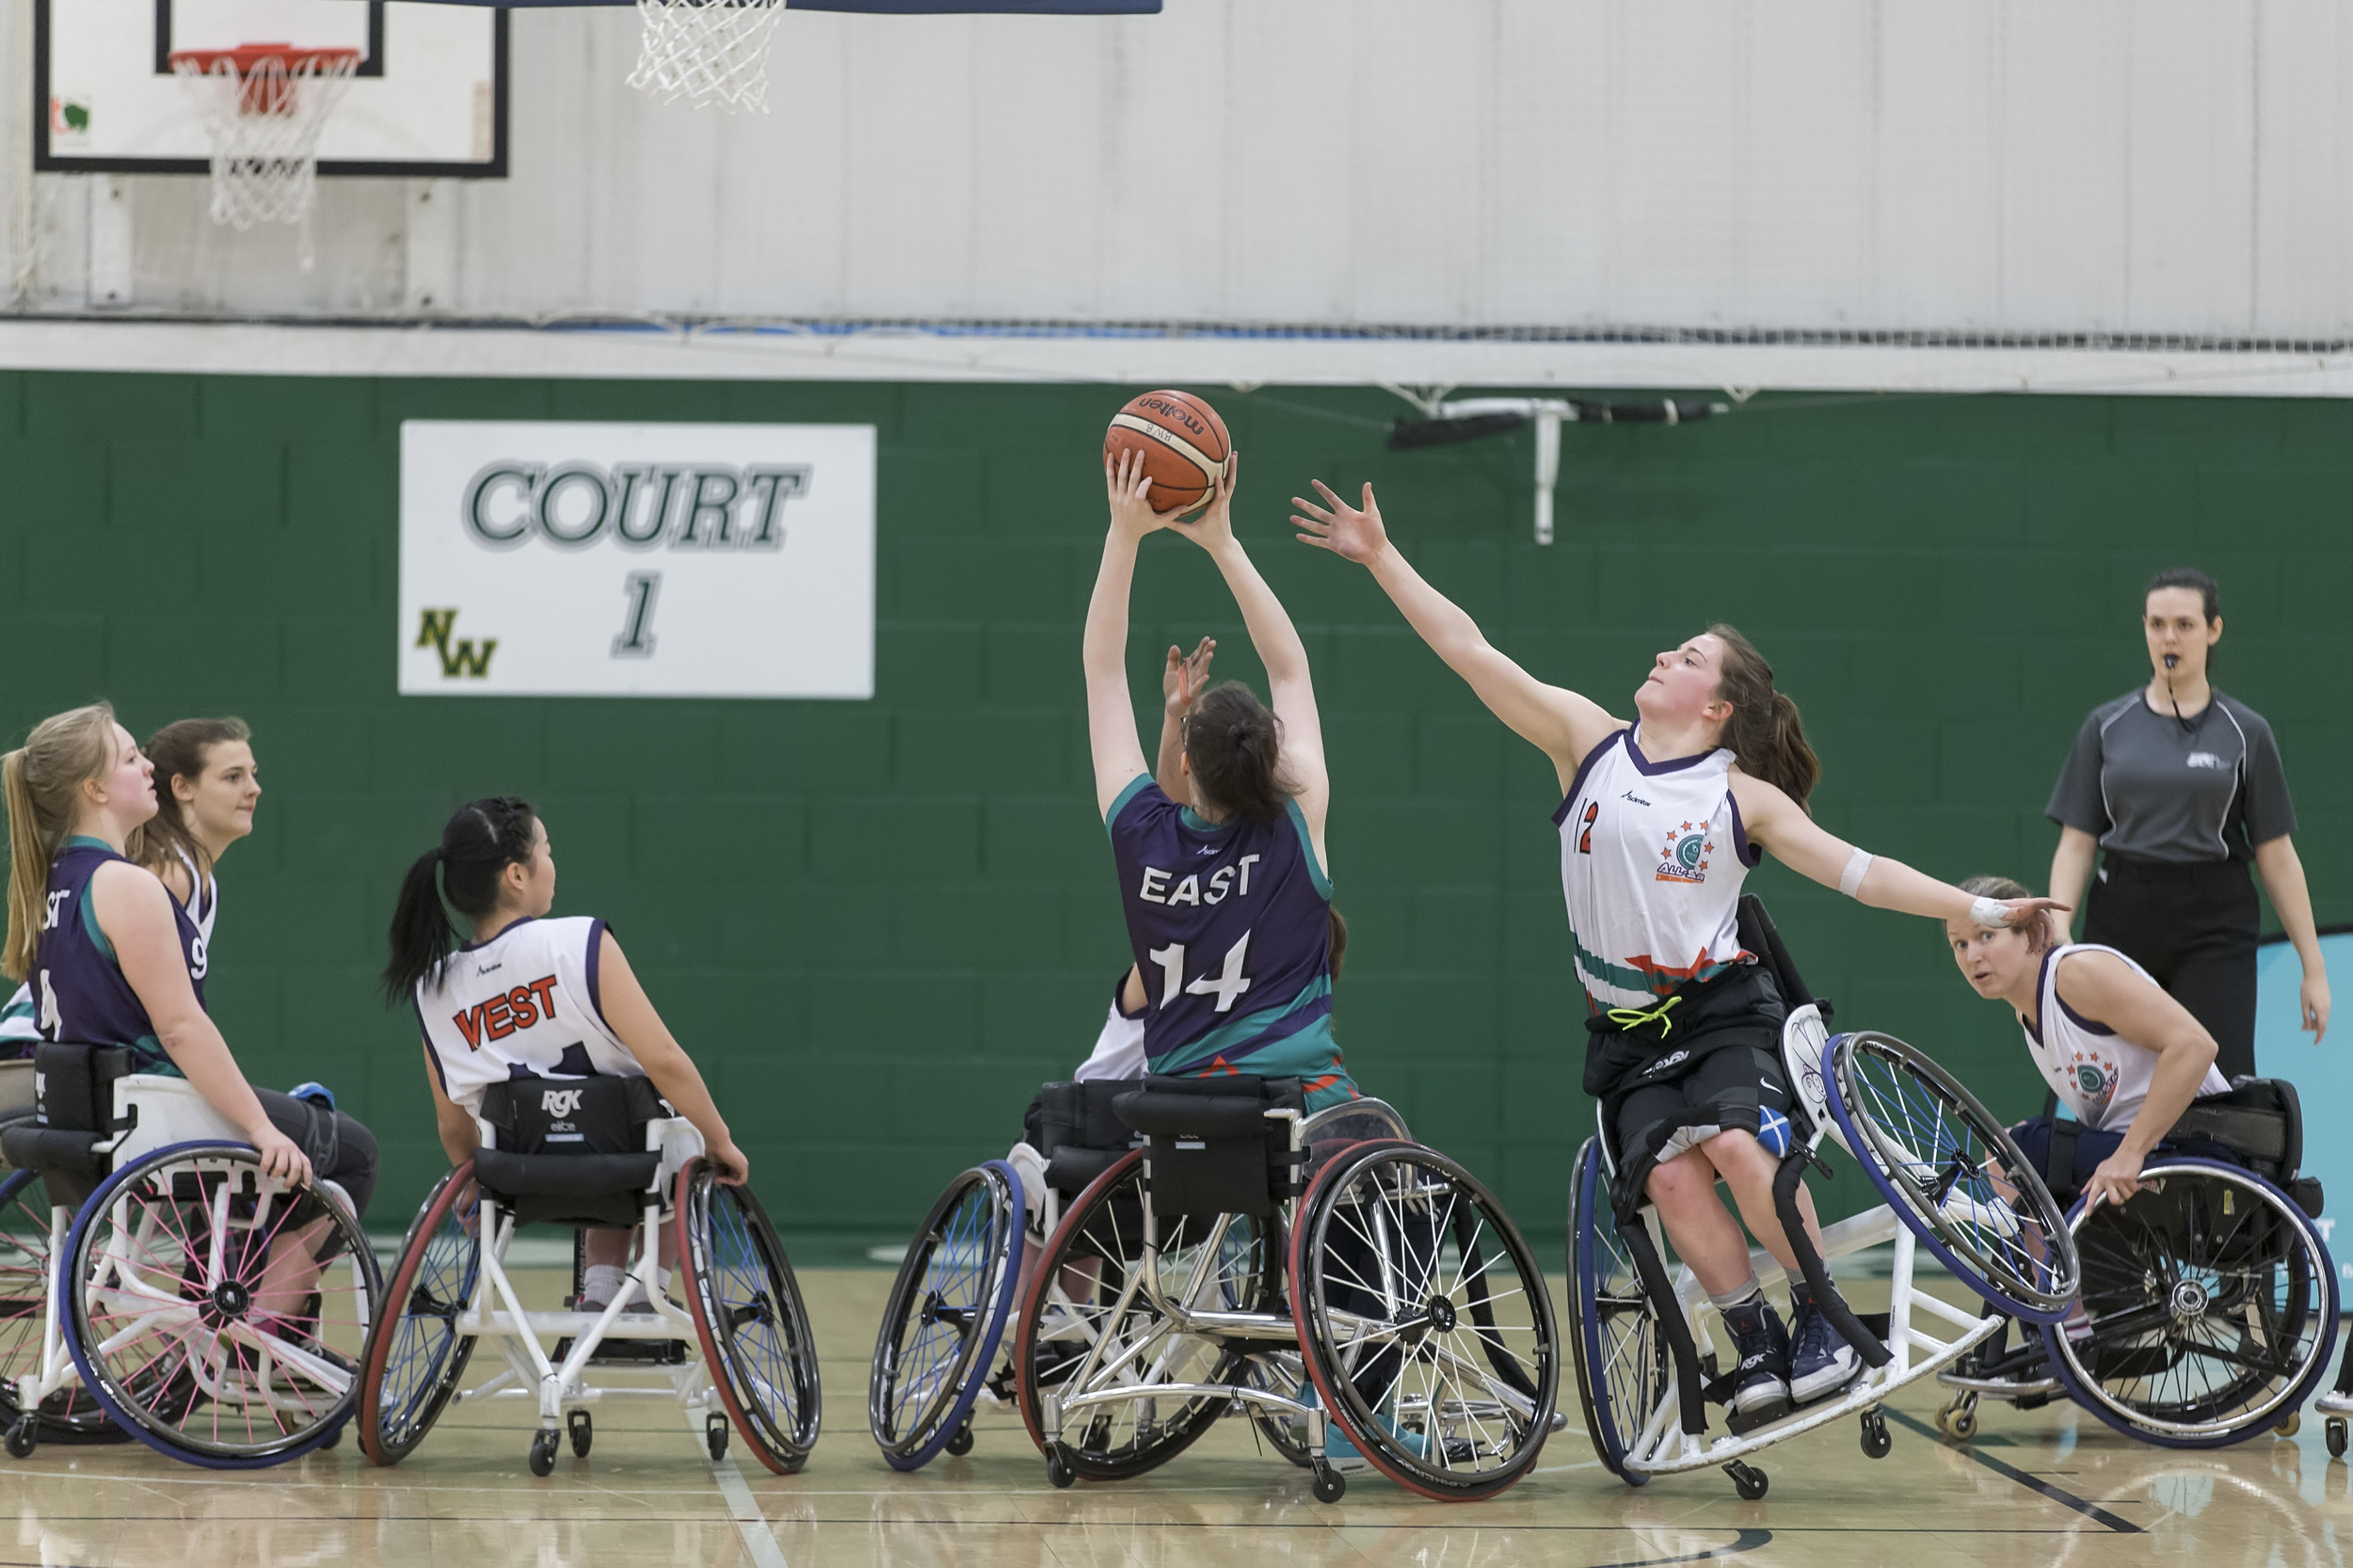 On one wheel - Mowenna putting everything into defence representing Team West at the 2016 BWB Women's League All-Star Game; photo credit SA Images